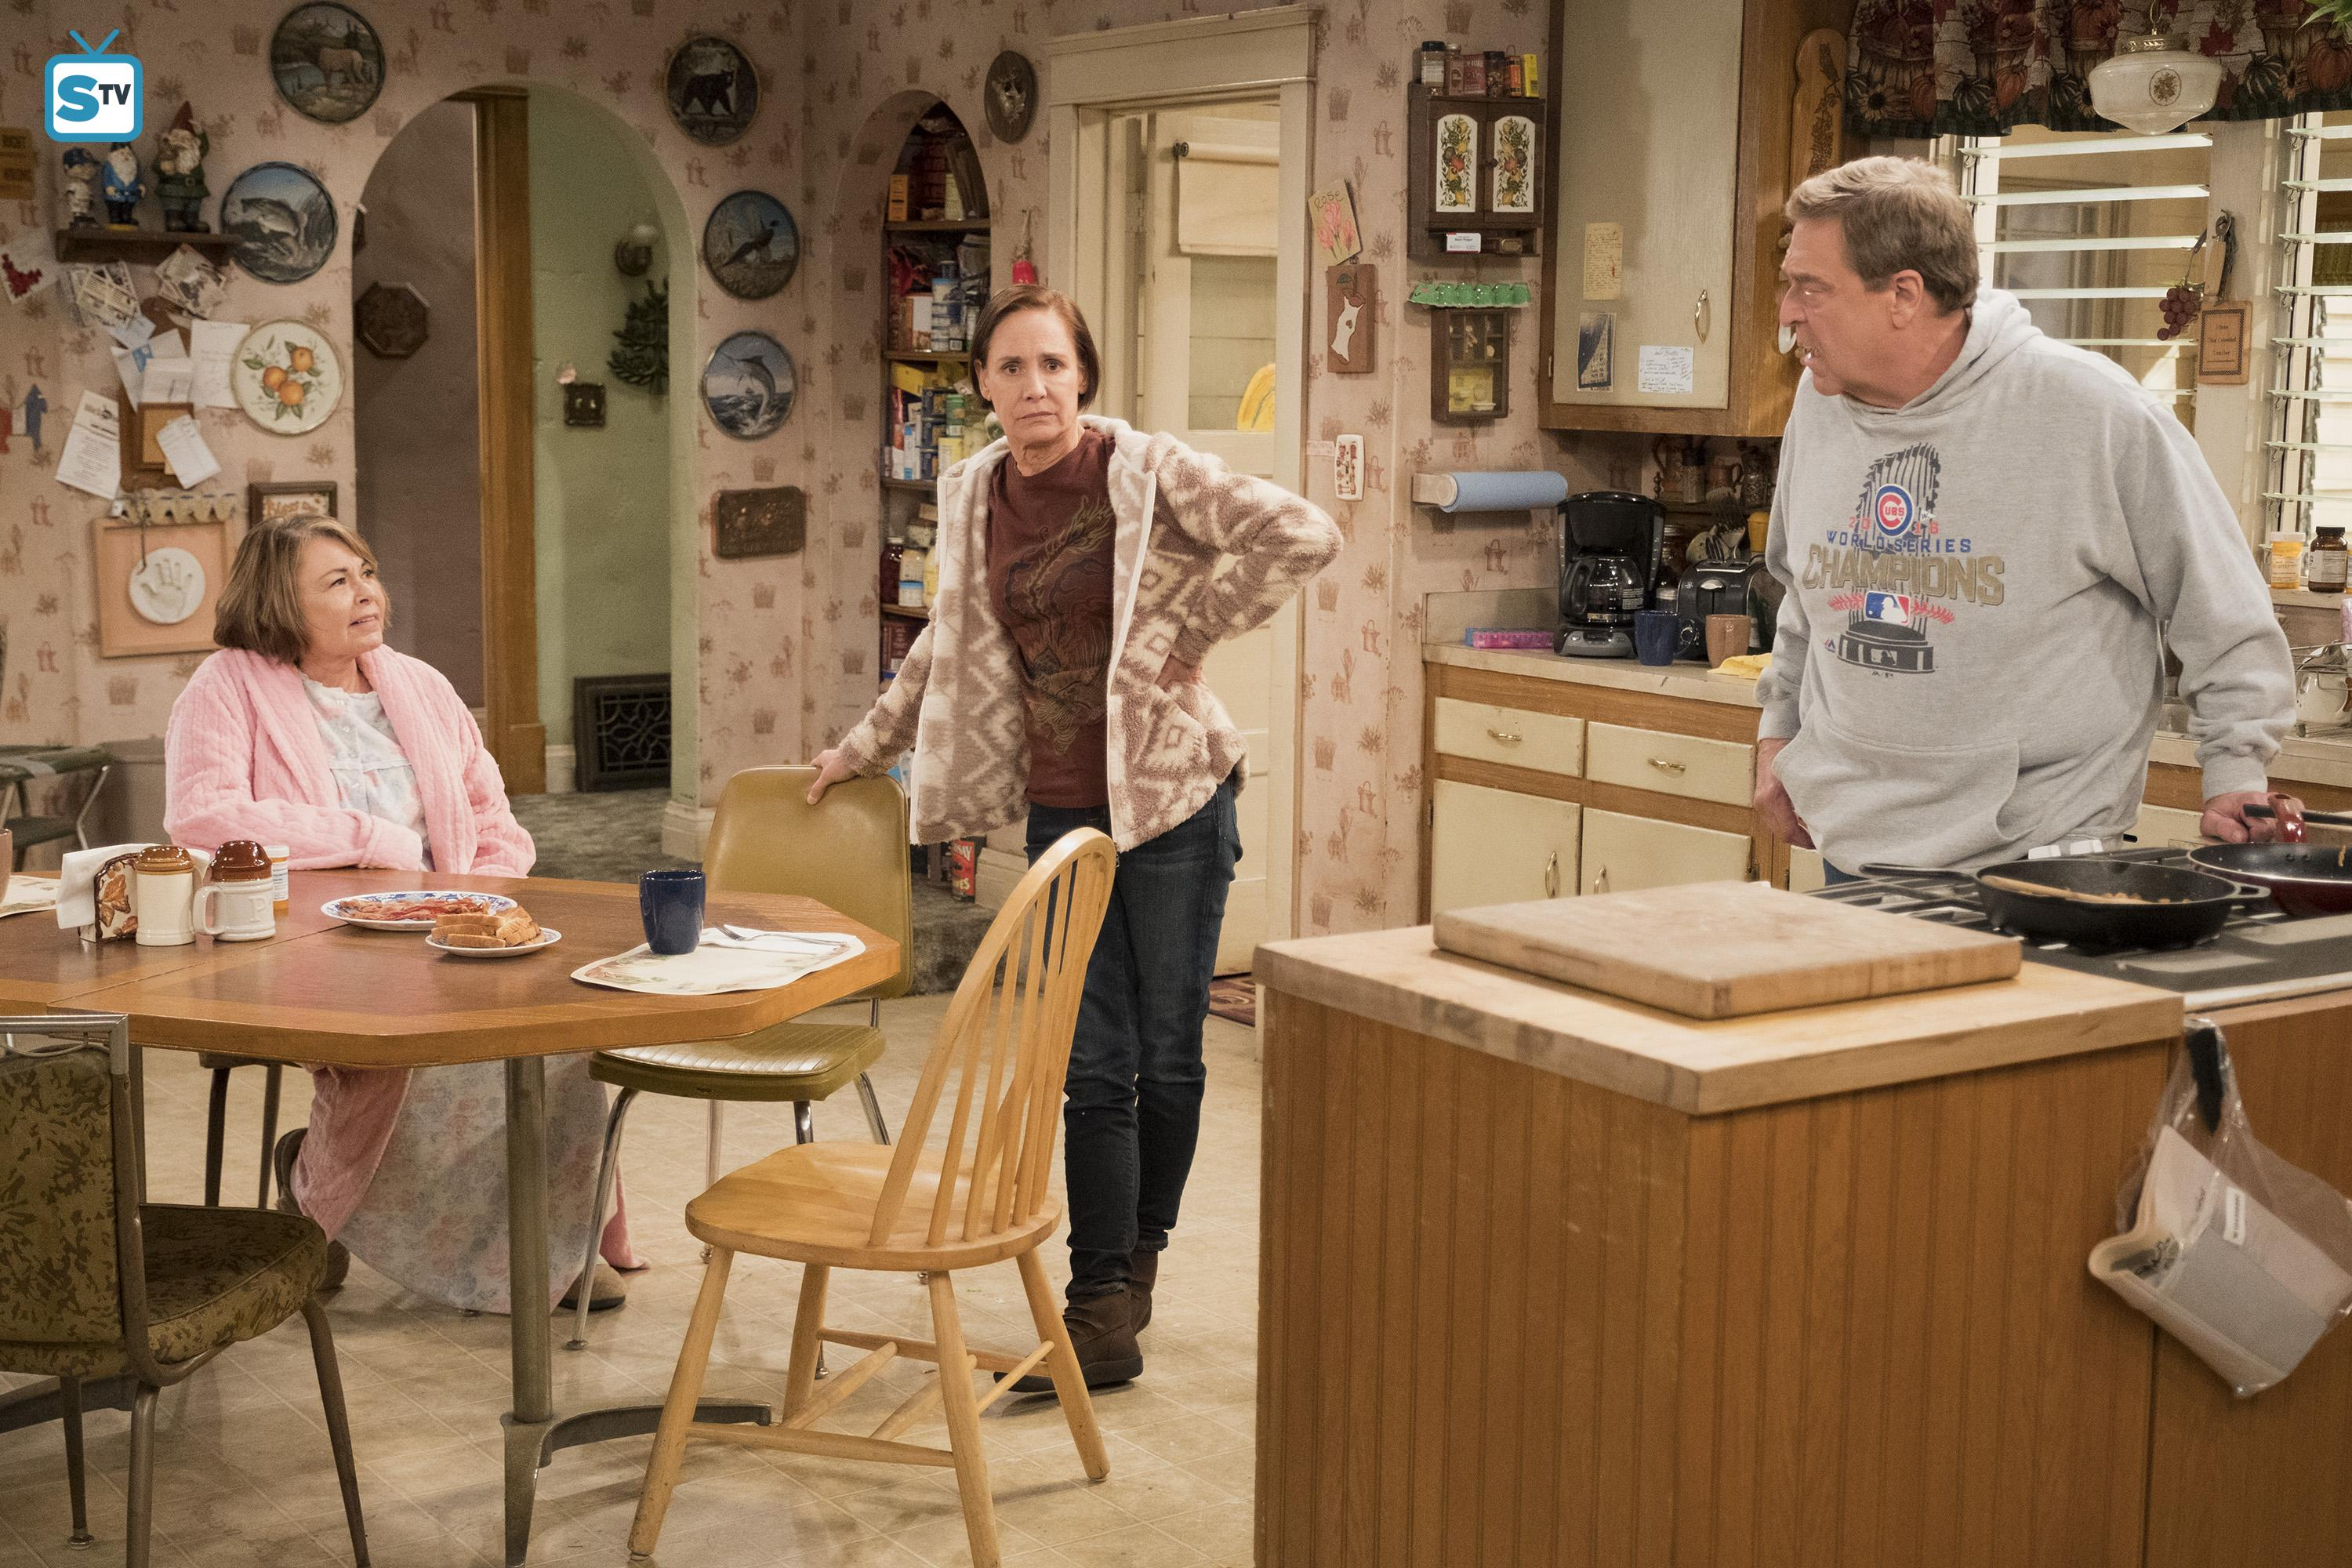 10x08 - Netflix and Pill - Roseanne, Jackie and Dan